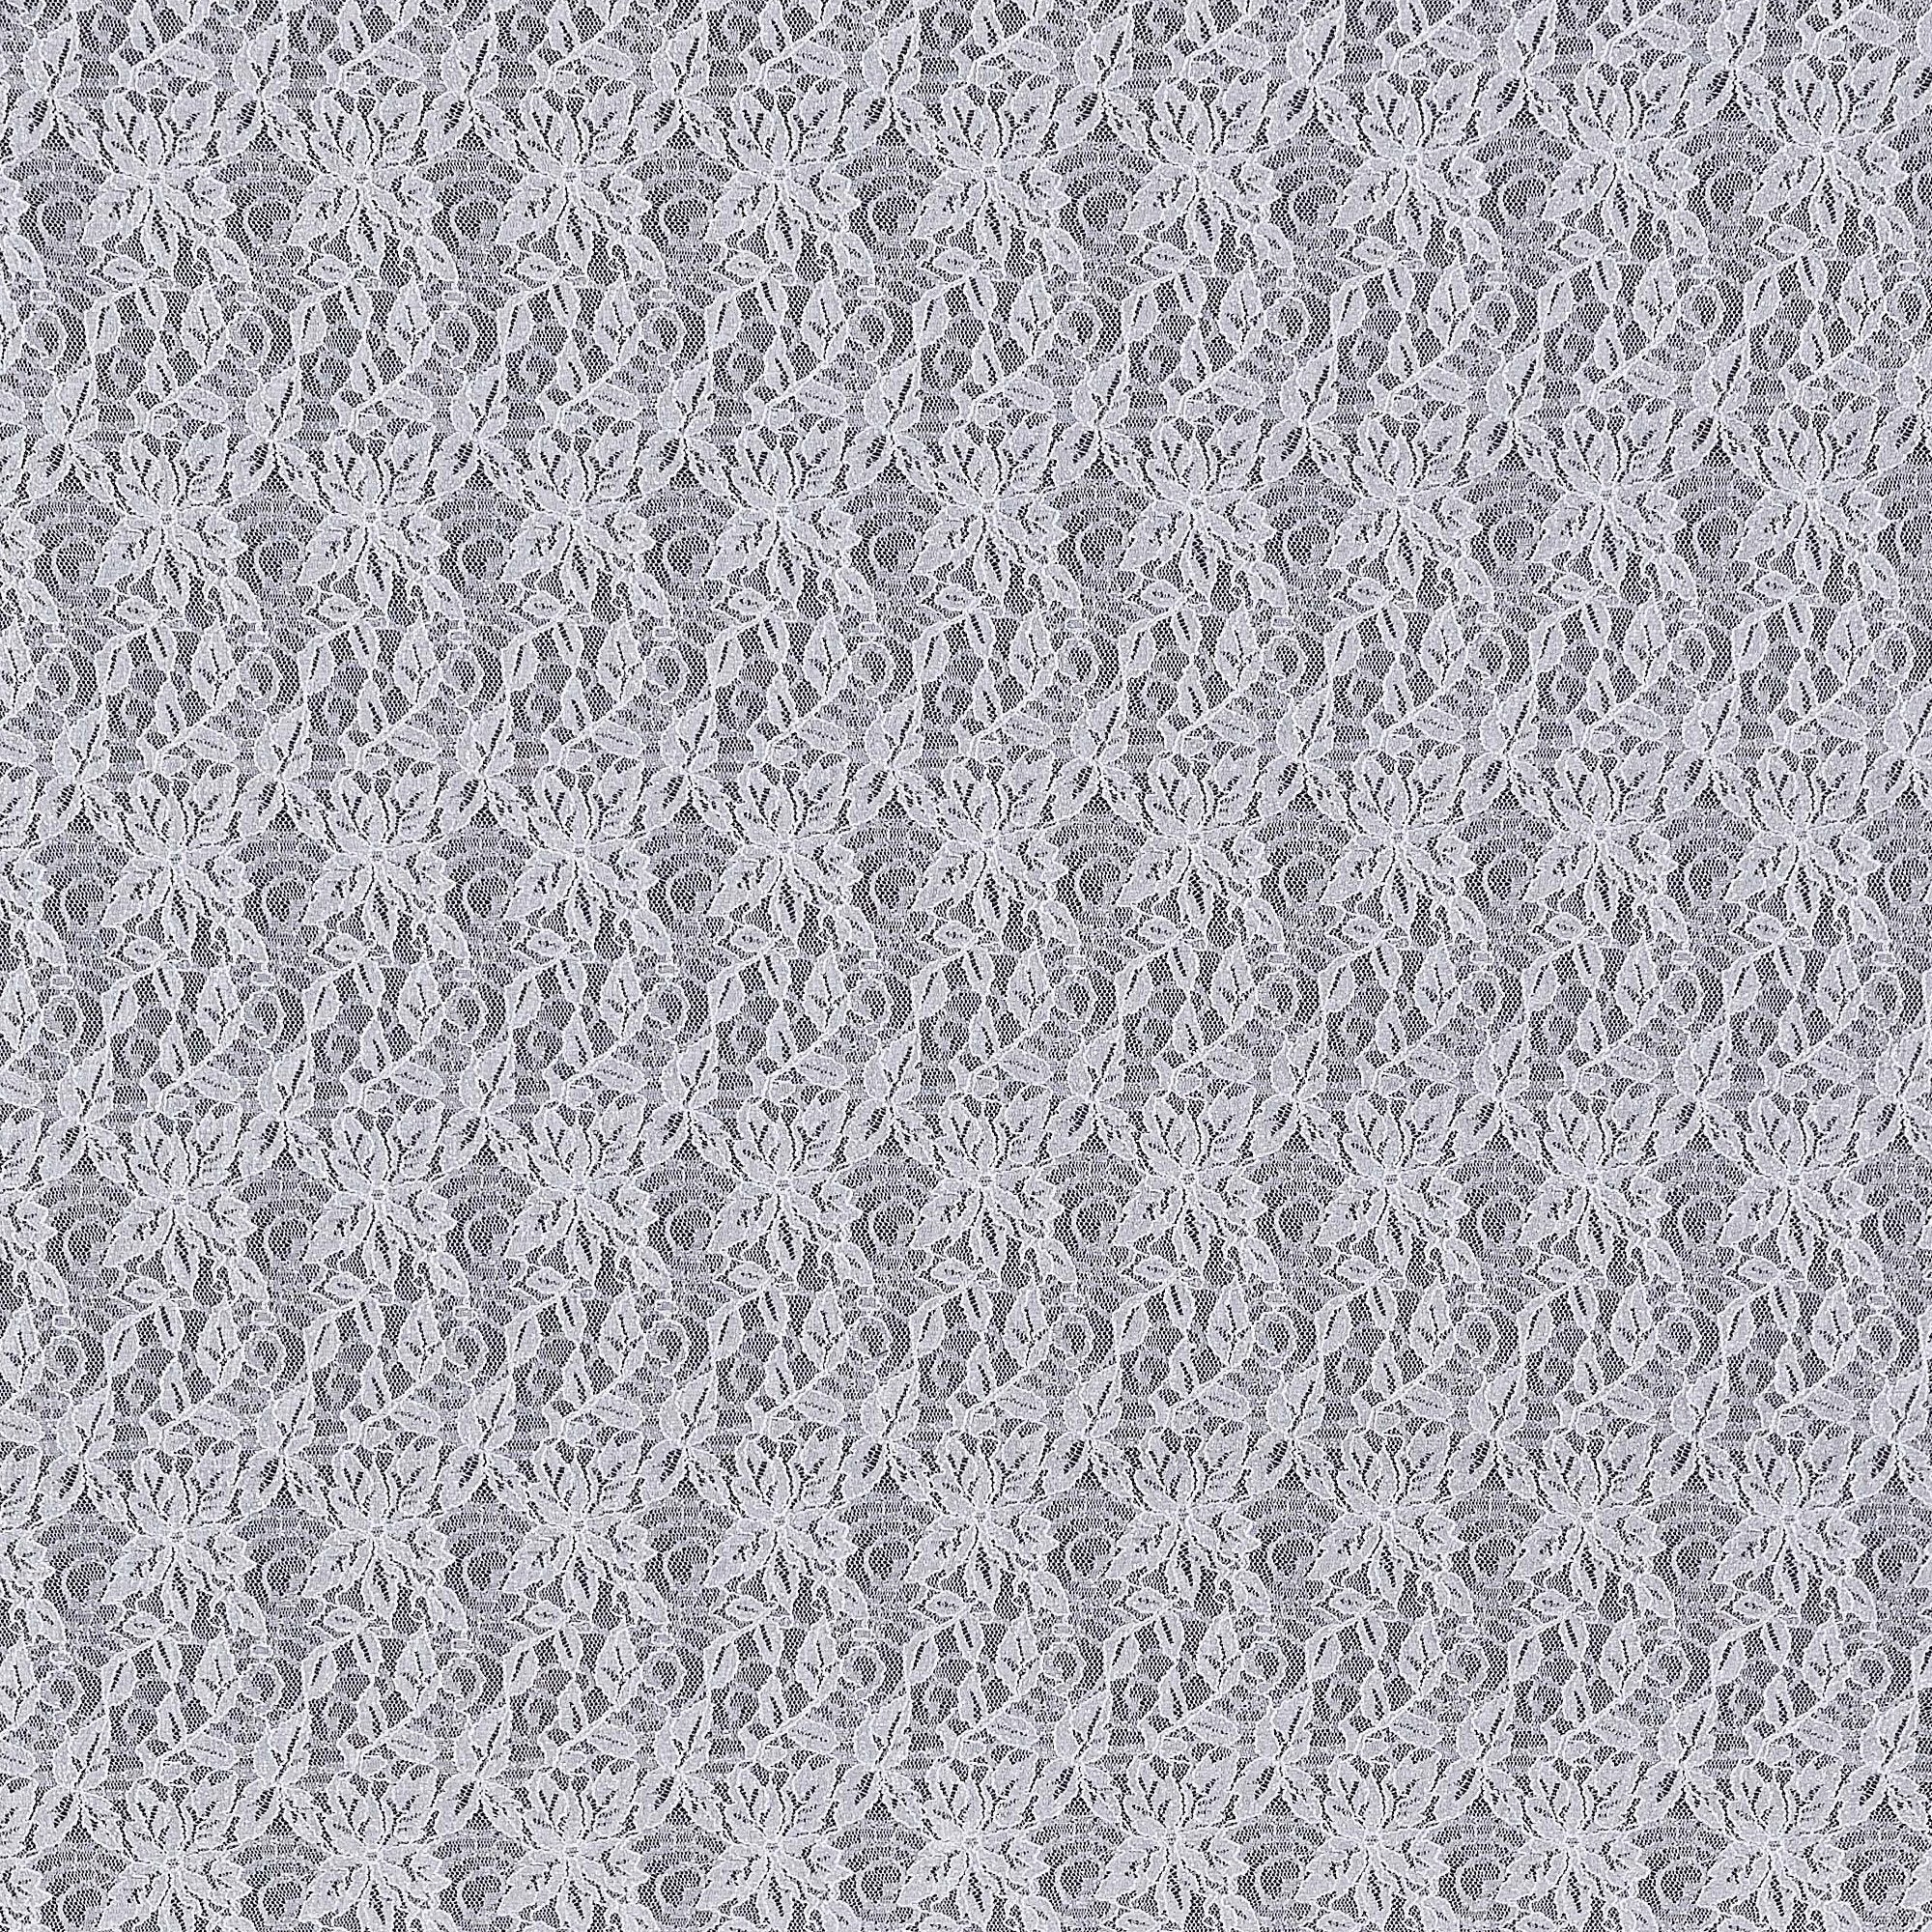 SILVER DOVE | 20809-ROLLERGLT-SILVER - CORD VENICE STRETCH LACE WITH ROLLER GLITTER - Zelouf Fabric